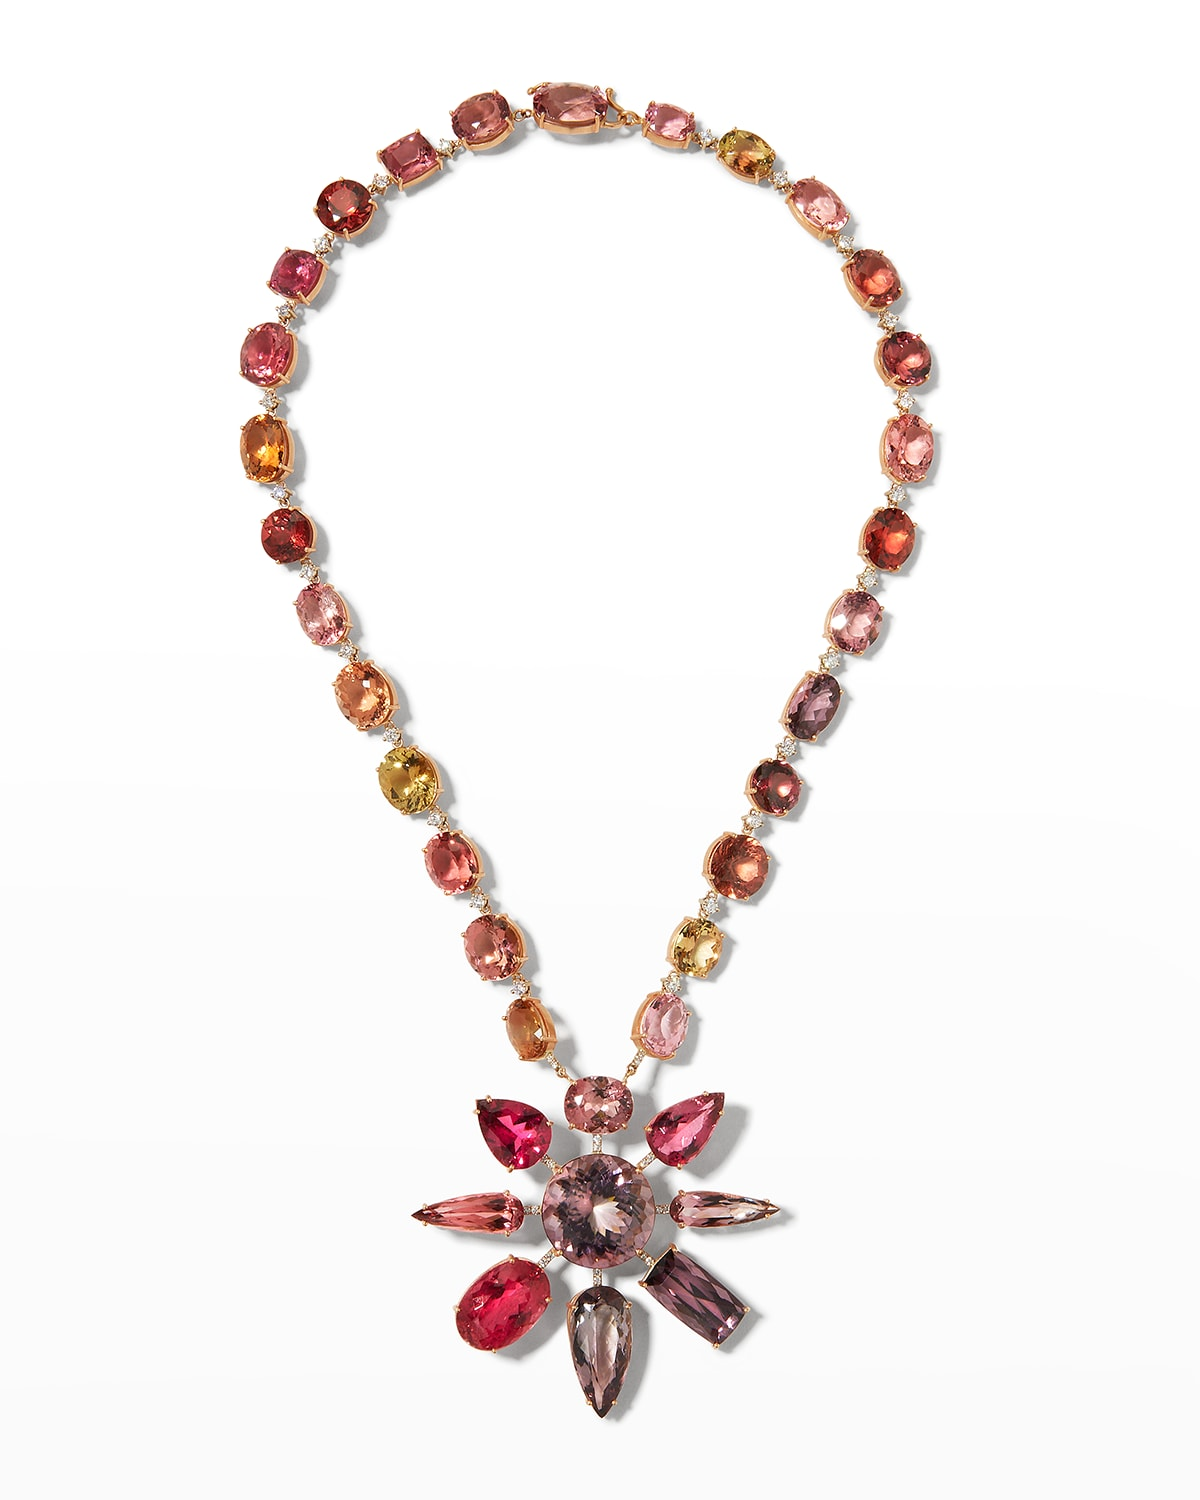 Pink and Yellow Tourmaline Necklace in 18k Rose and White Gold